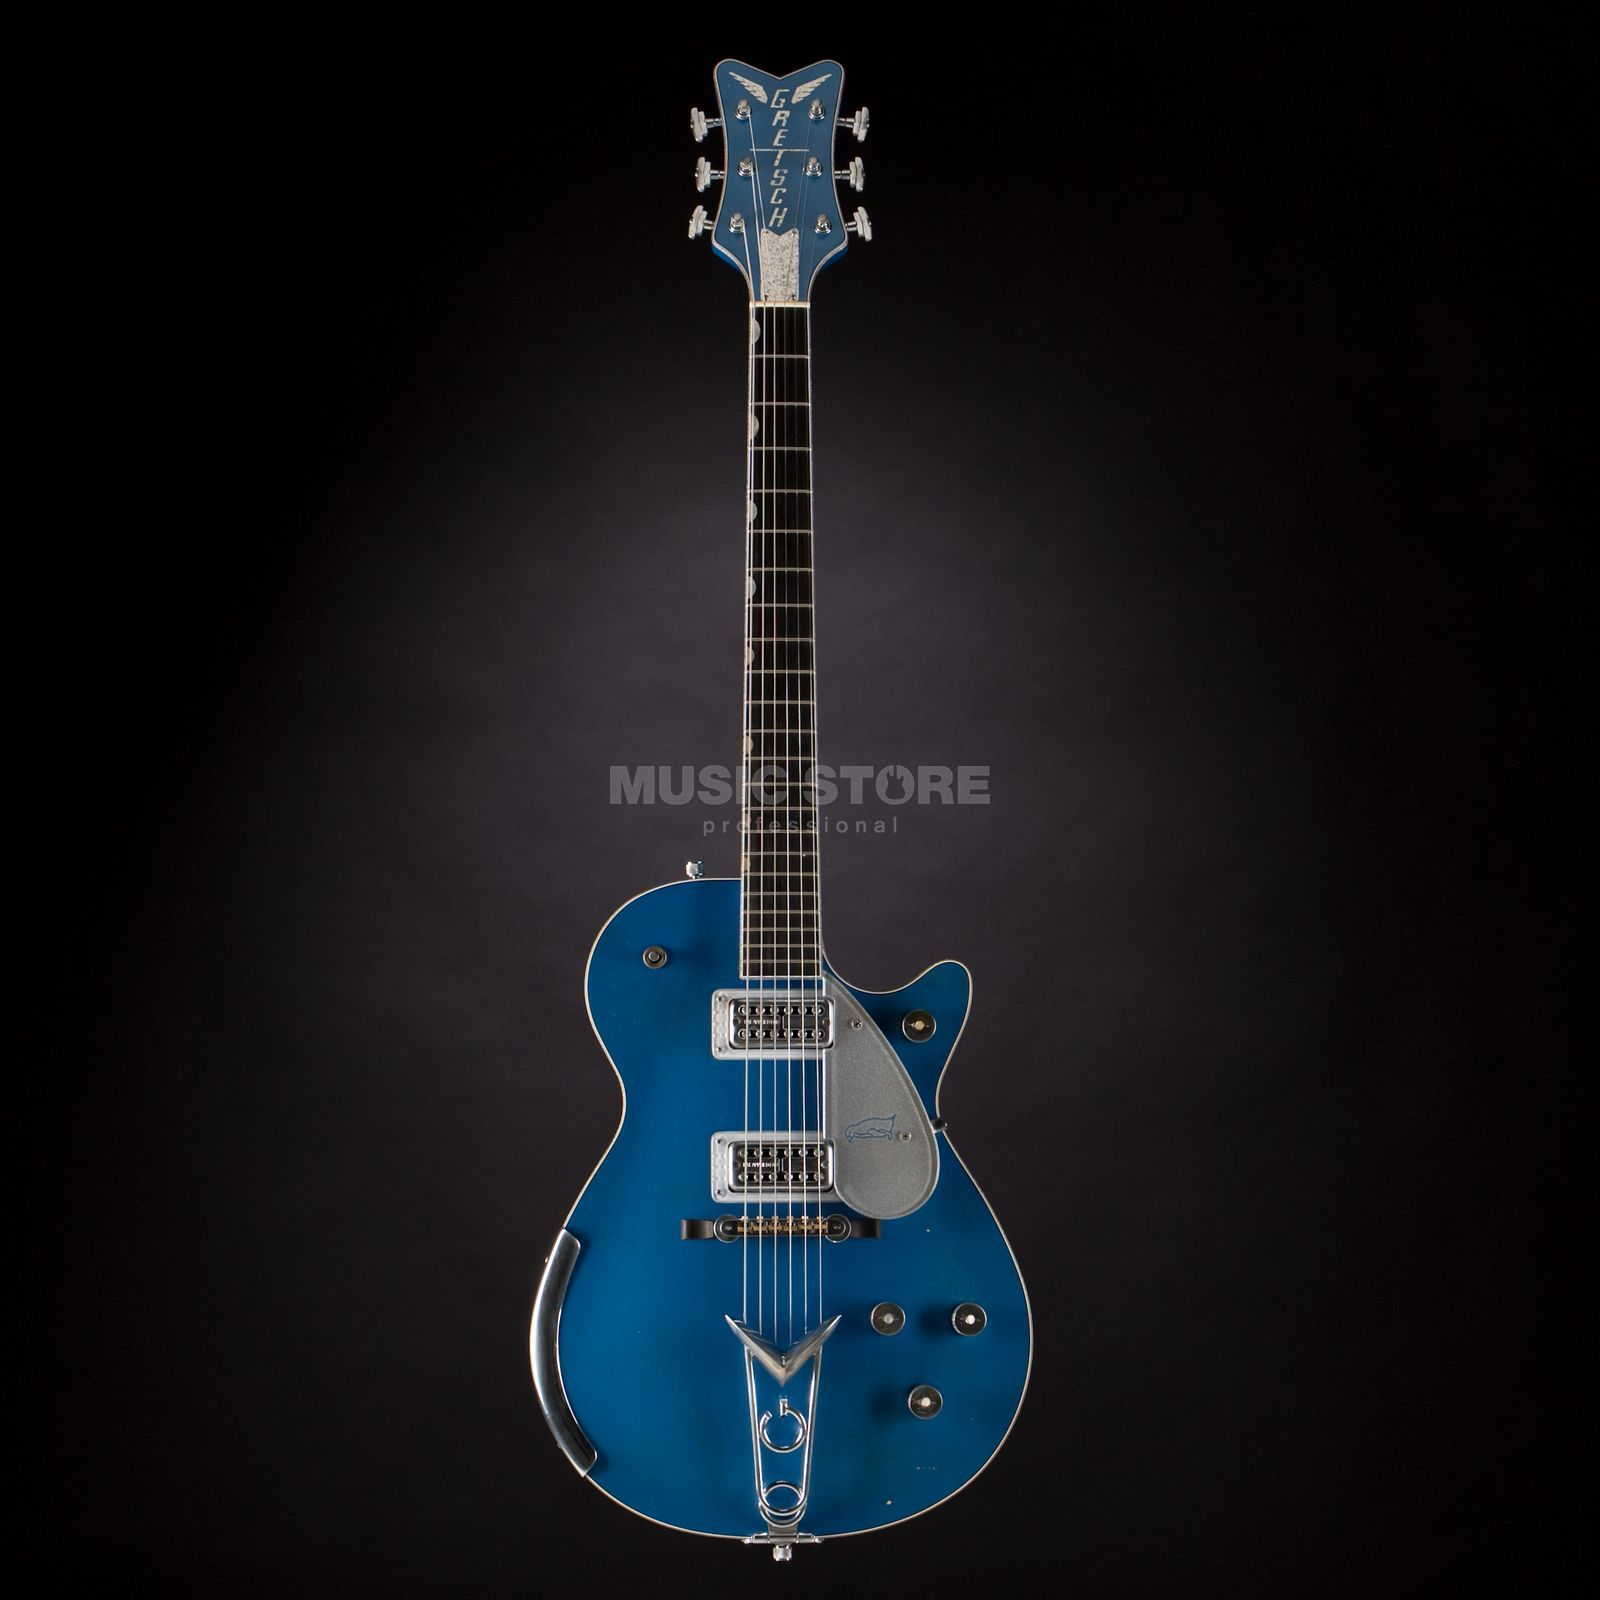 Gretsch Custom Shop G6134 Penguin Relic Lake Placid Blue, #UC16021353 Produktbillede